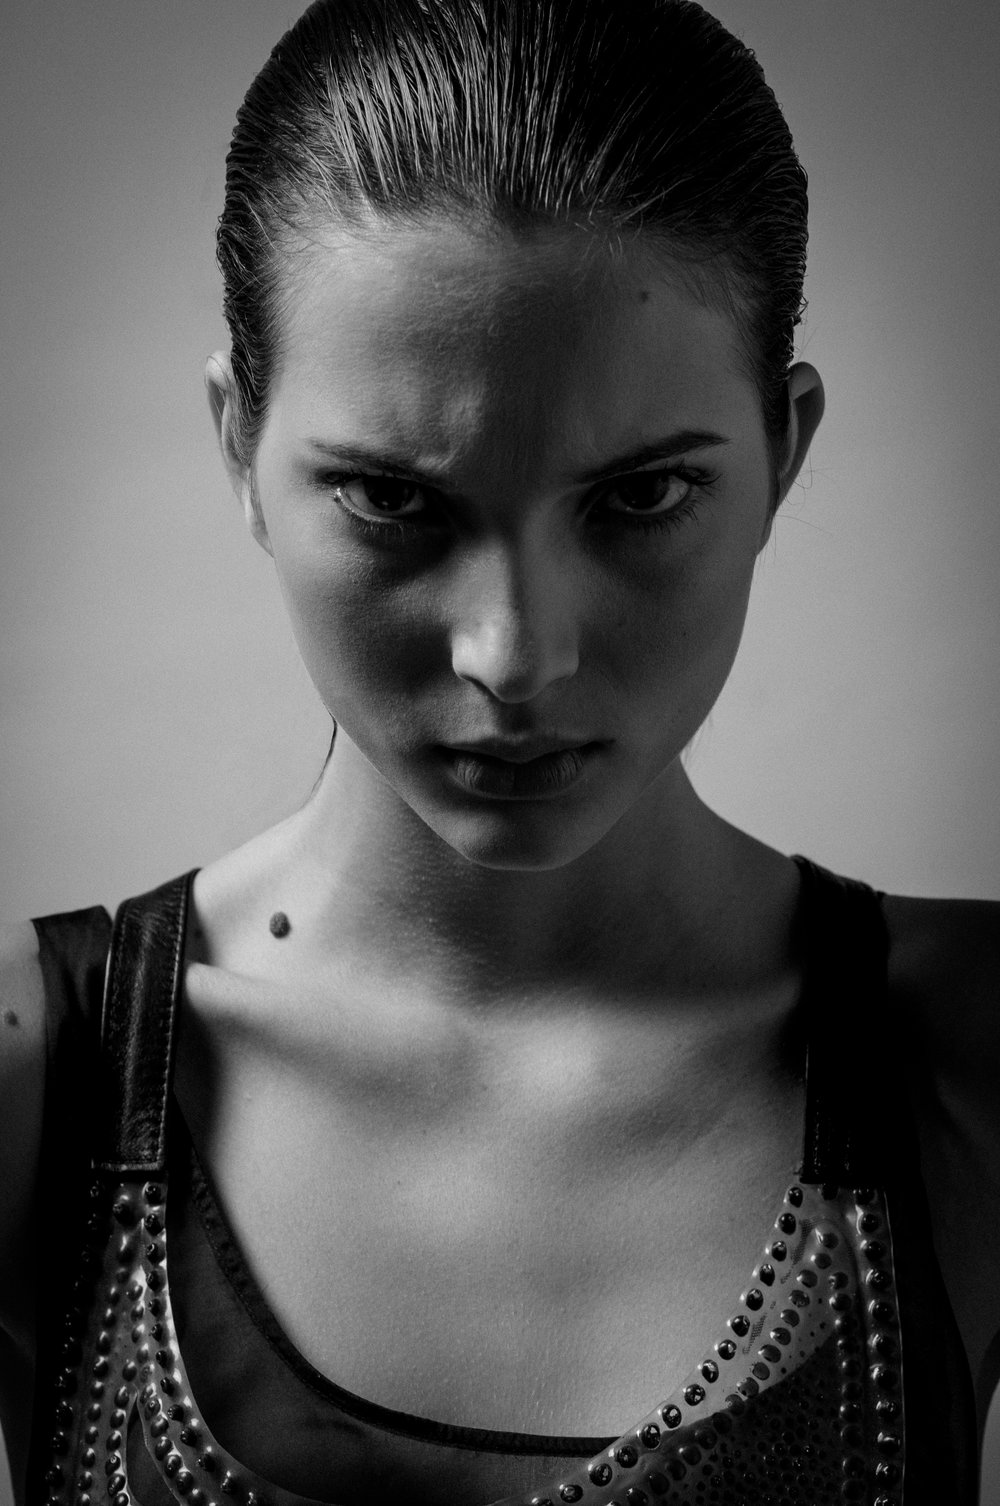 Portraits-64-Edit.jpg